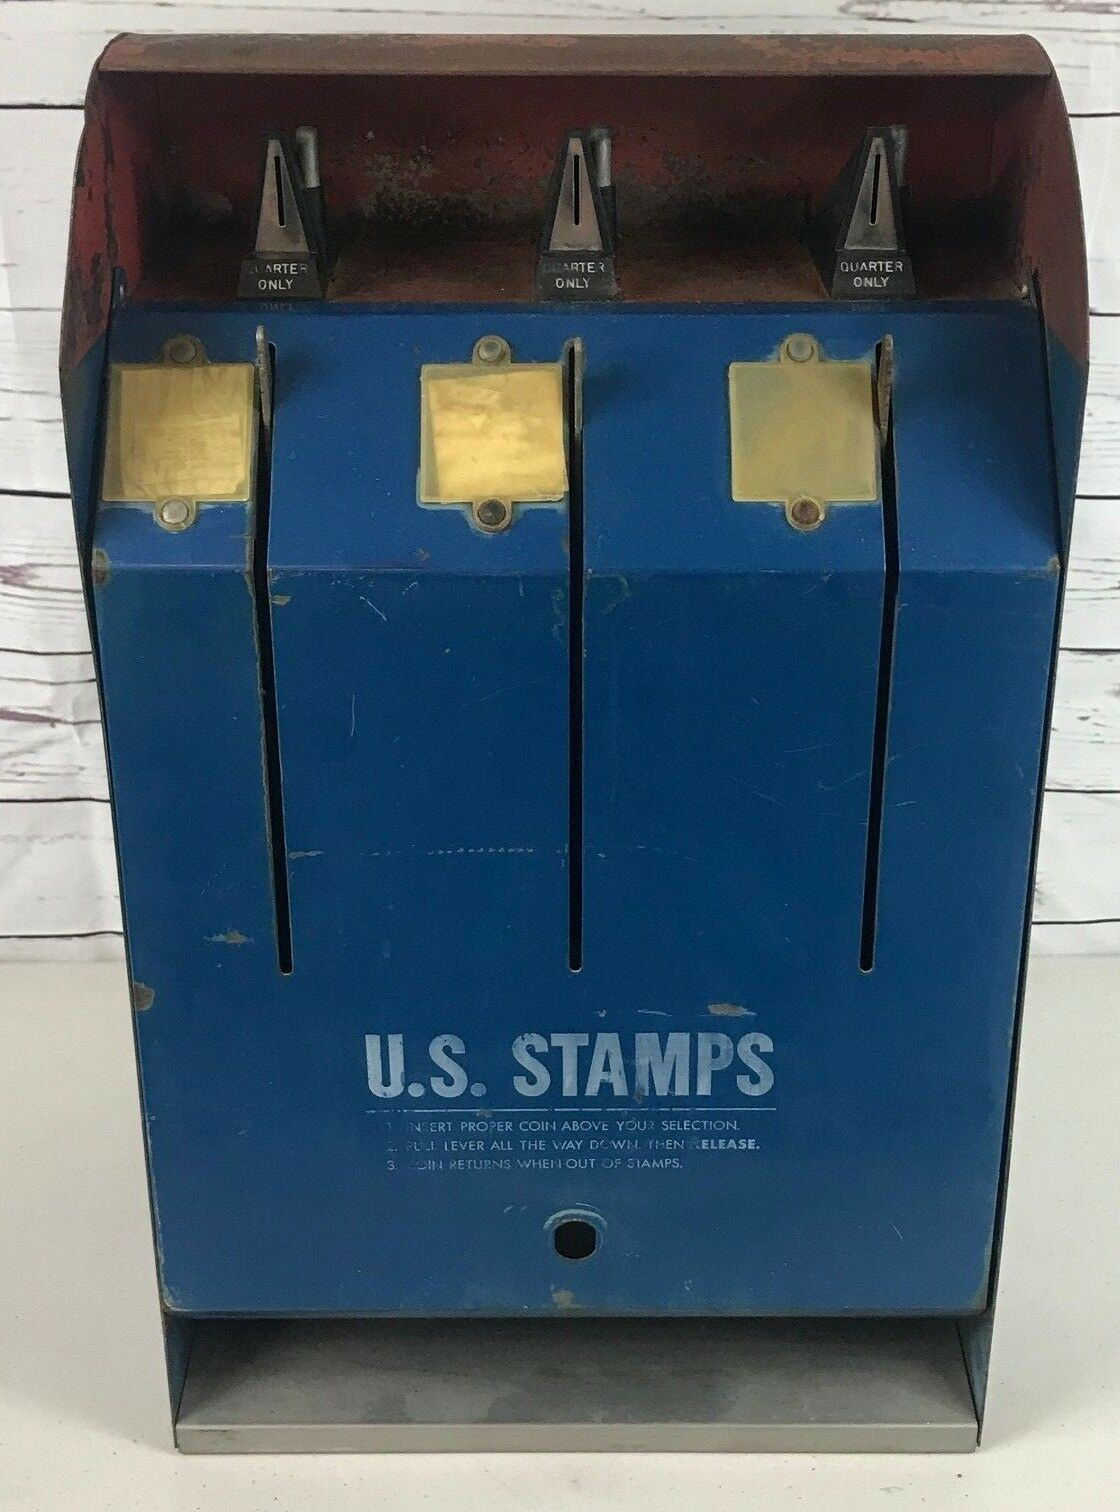 Primary image for USPS Model S70-2M Postage Stamp Coin Operated 25 Cent Vending Machine RARE Vntg